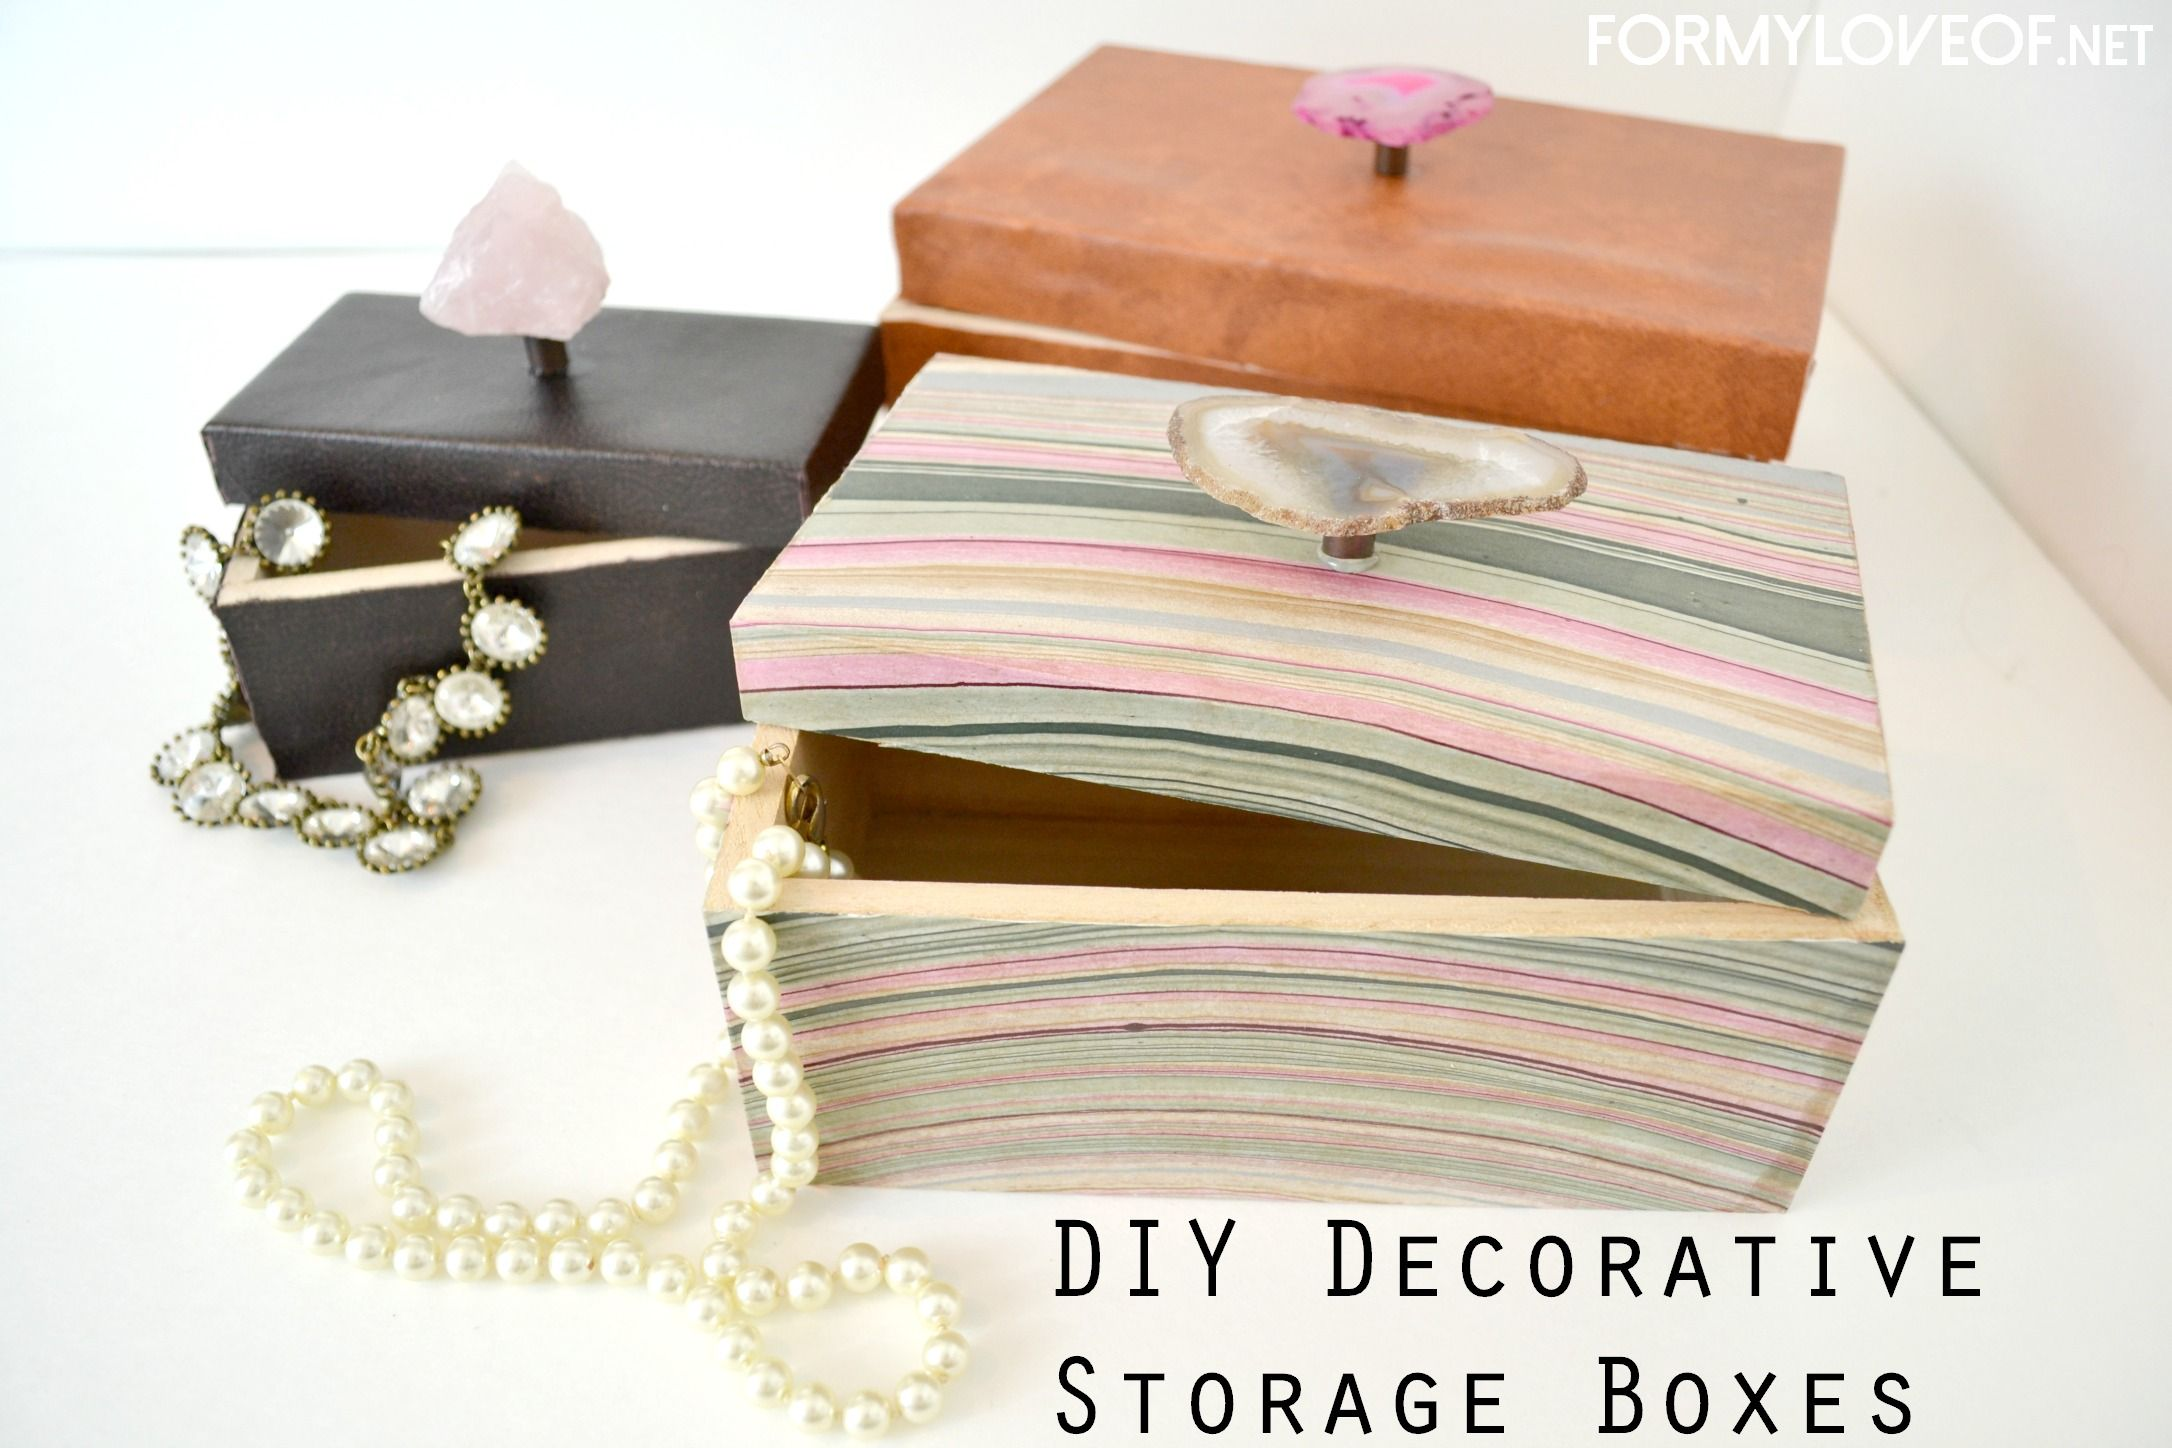 Diy Decorated Storage Boxes Paper-Mache-DIY-Storage-Boxes-Crafts ...